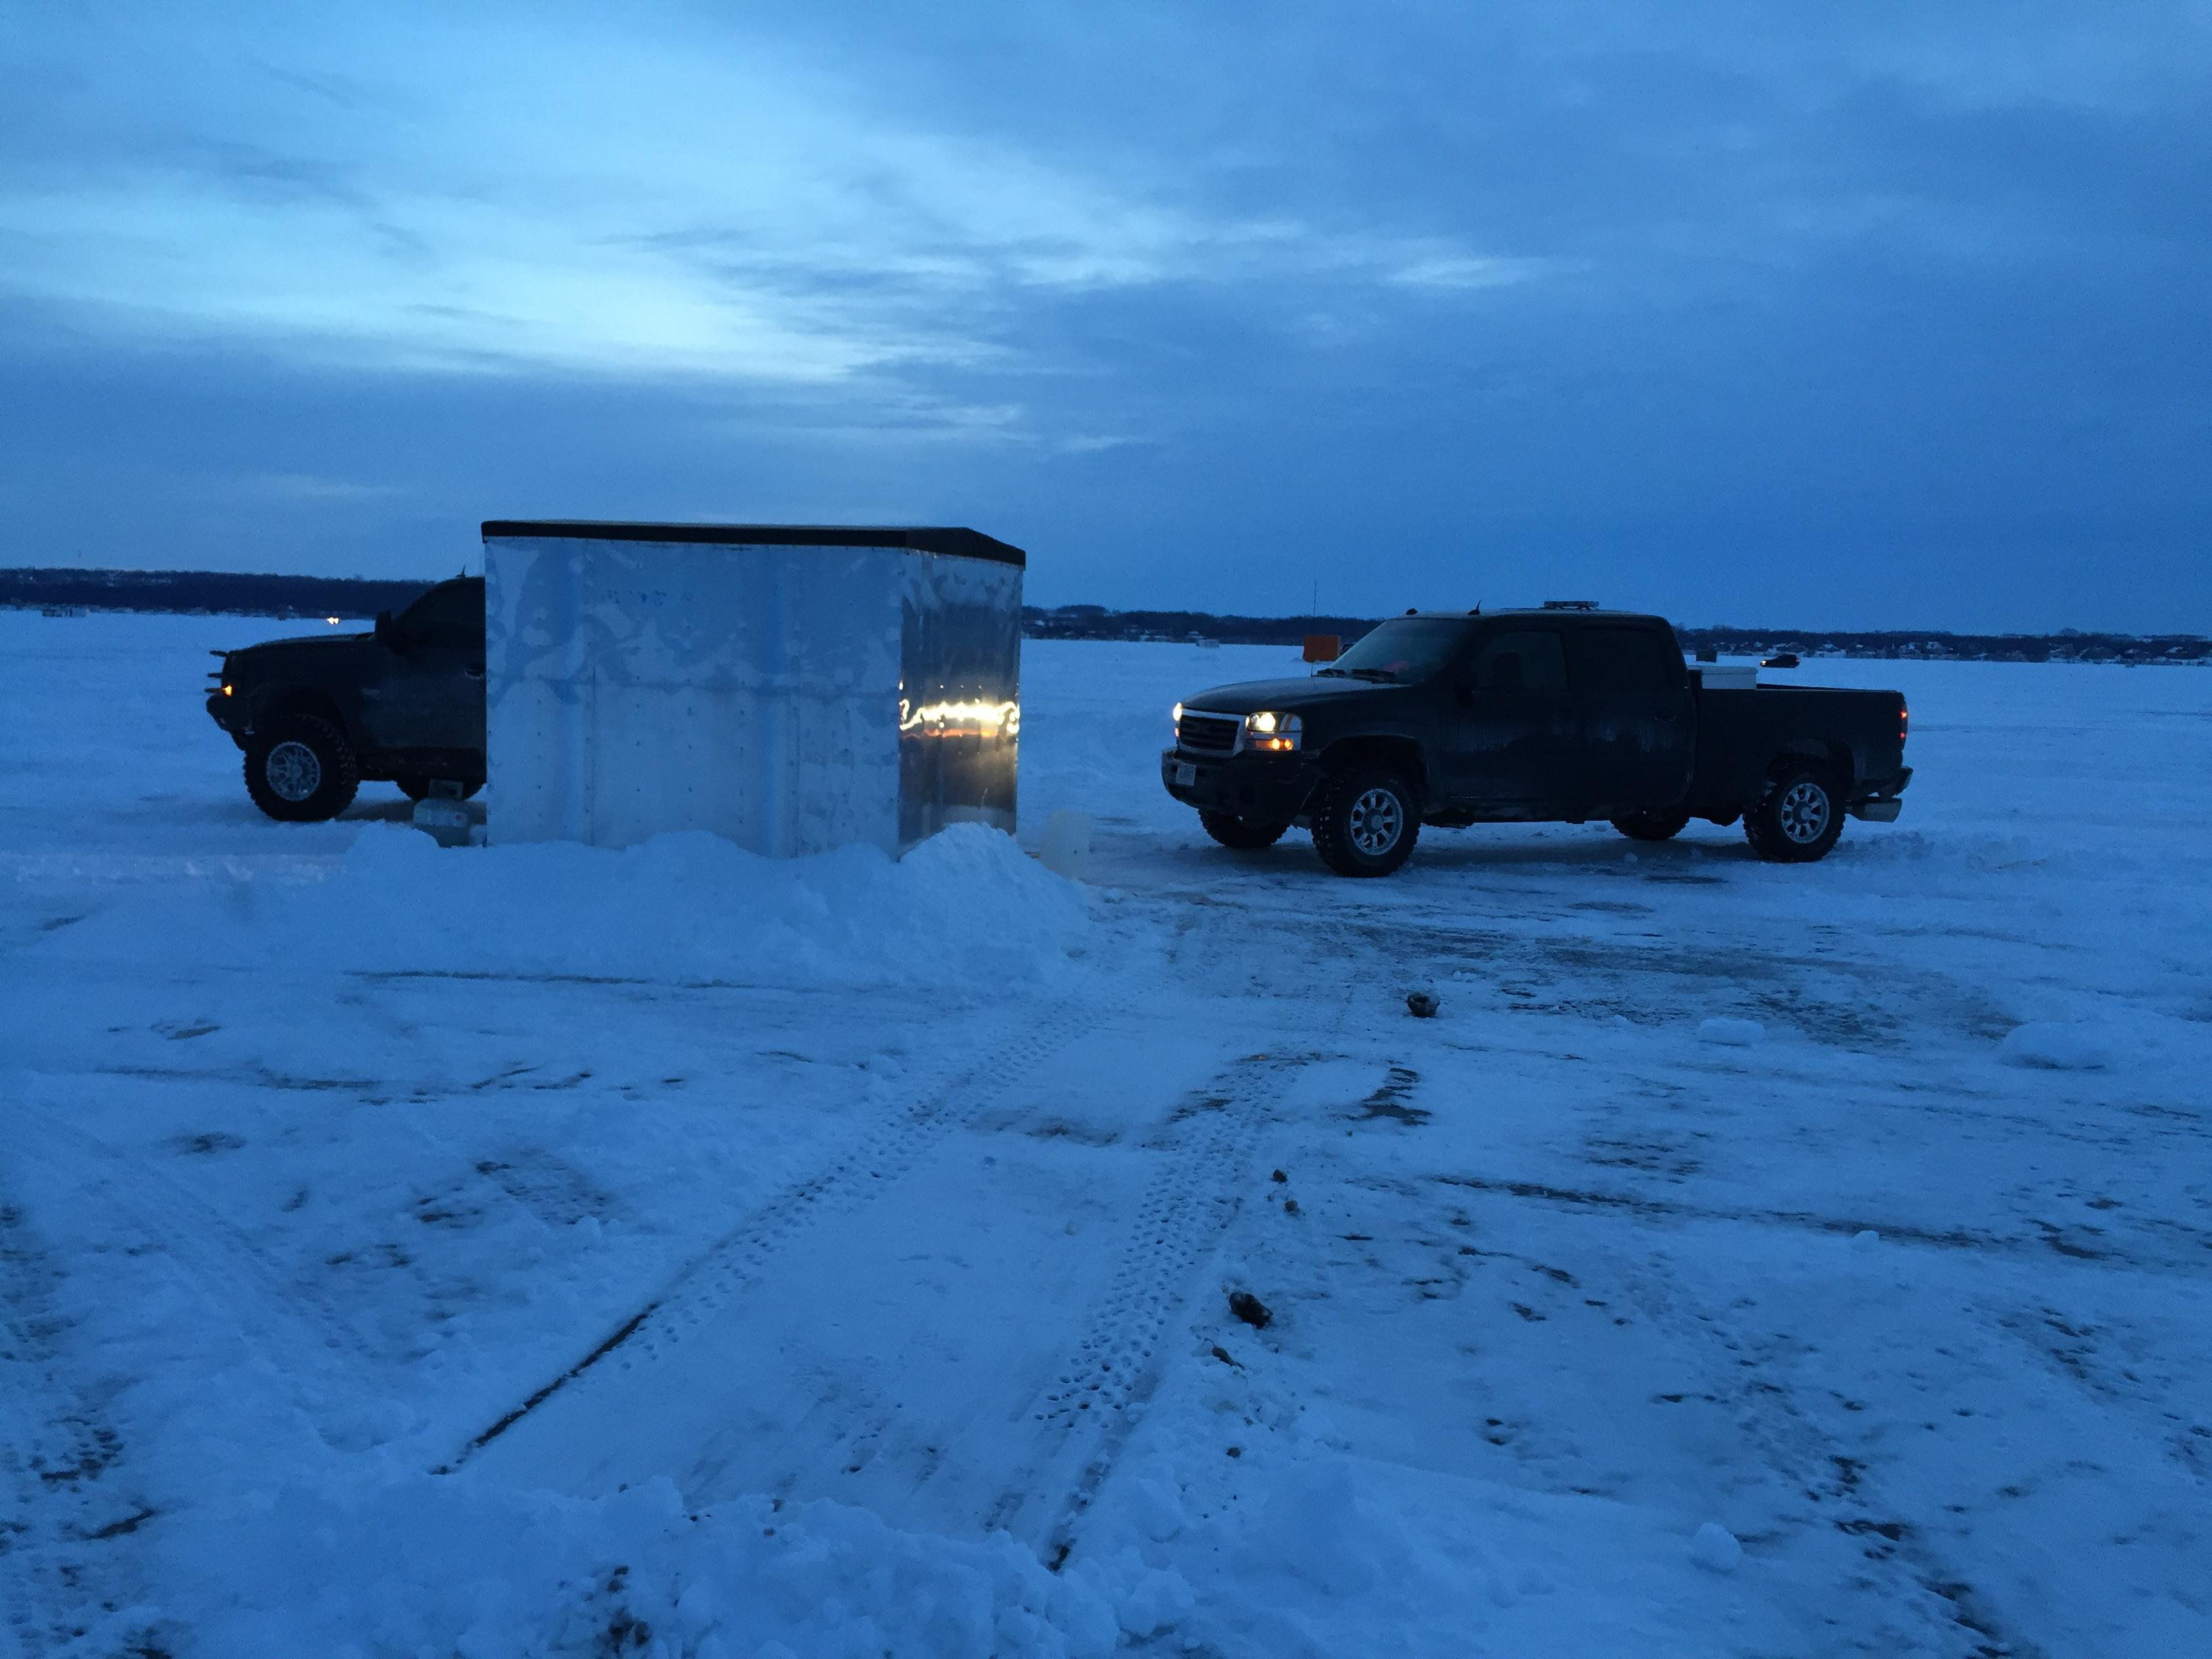 Sturgeon spearing shack on opening morning on Lake Winnebago(WLUK/Eric Peterson).